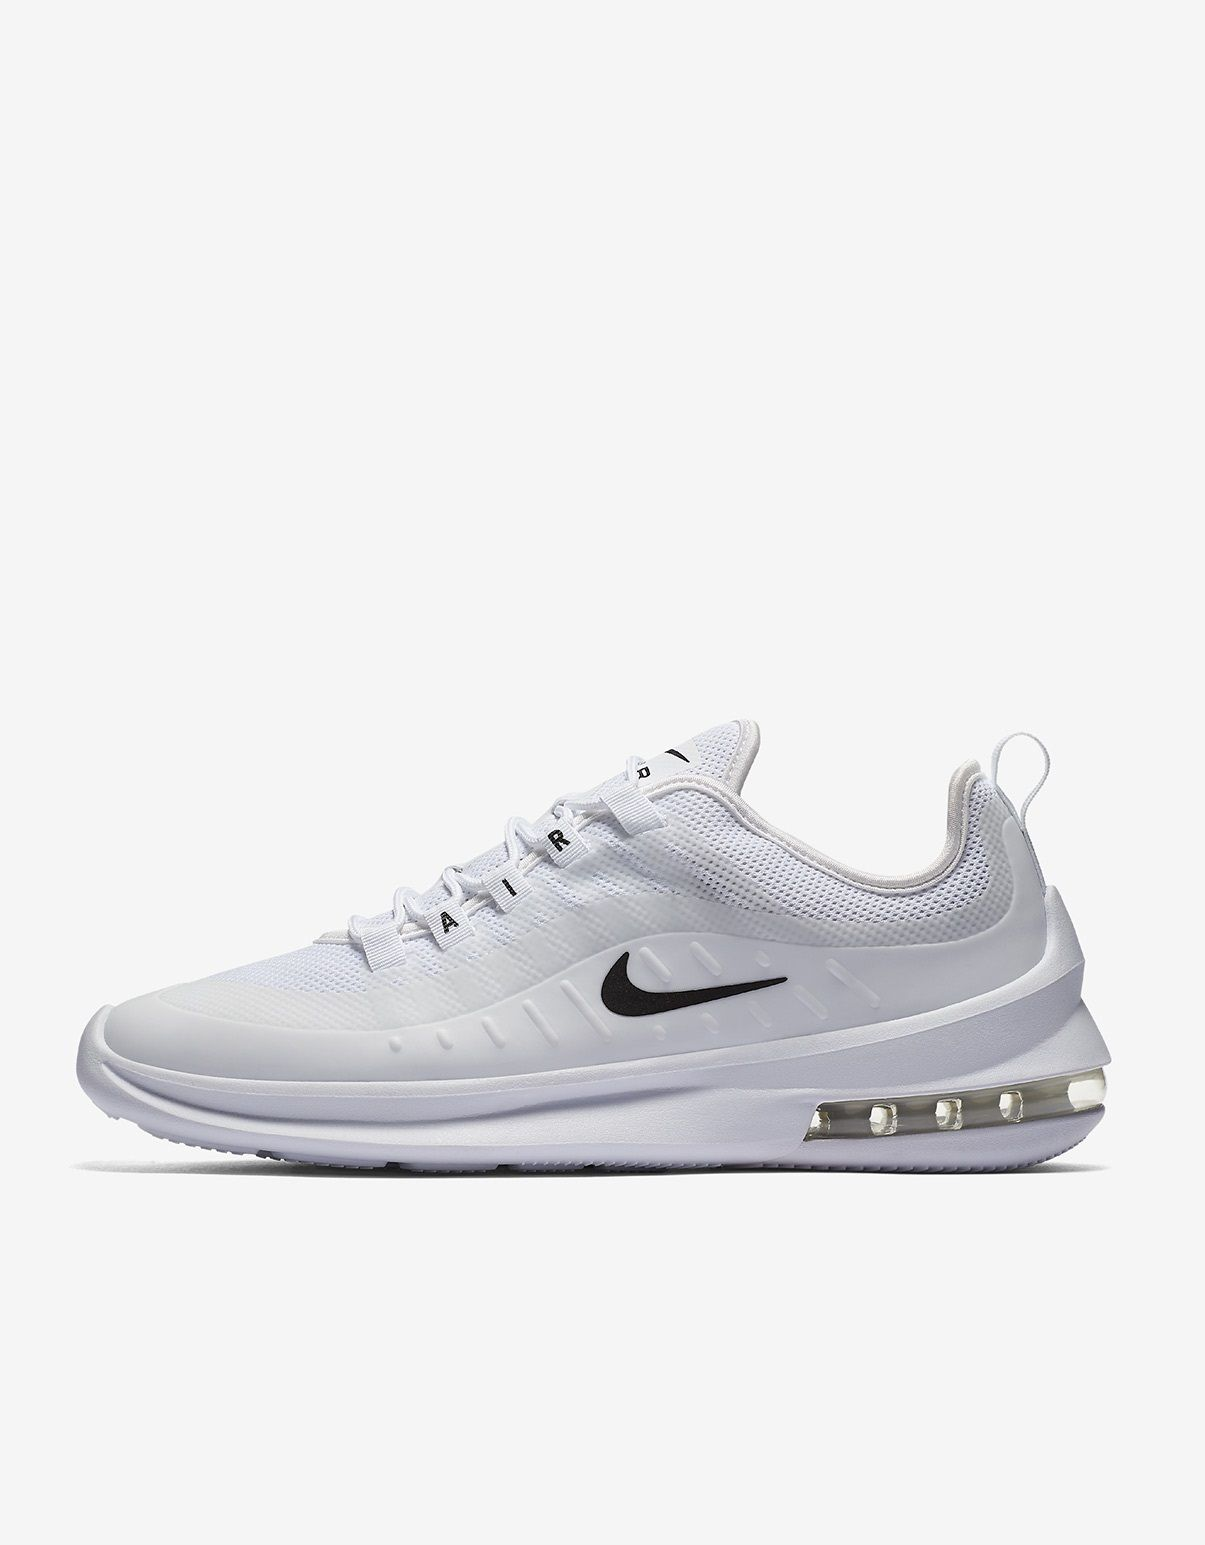 Nike Air Max Axis   Shoes   Nike air max, Nike, Sneakers nike 69793cd2df